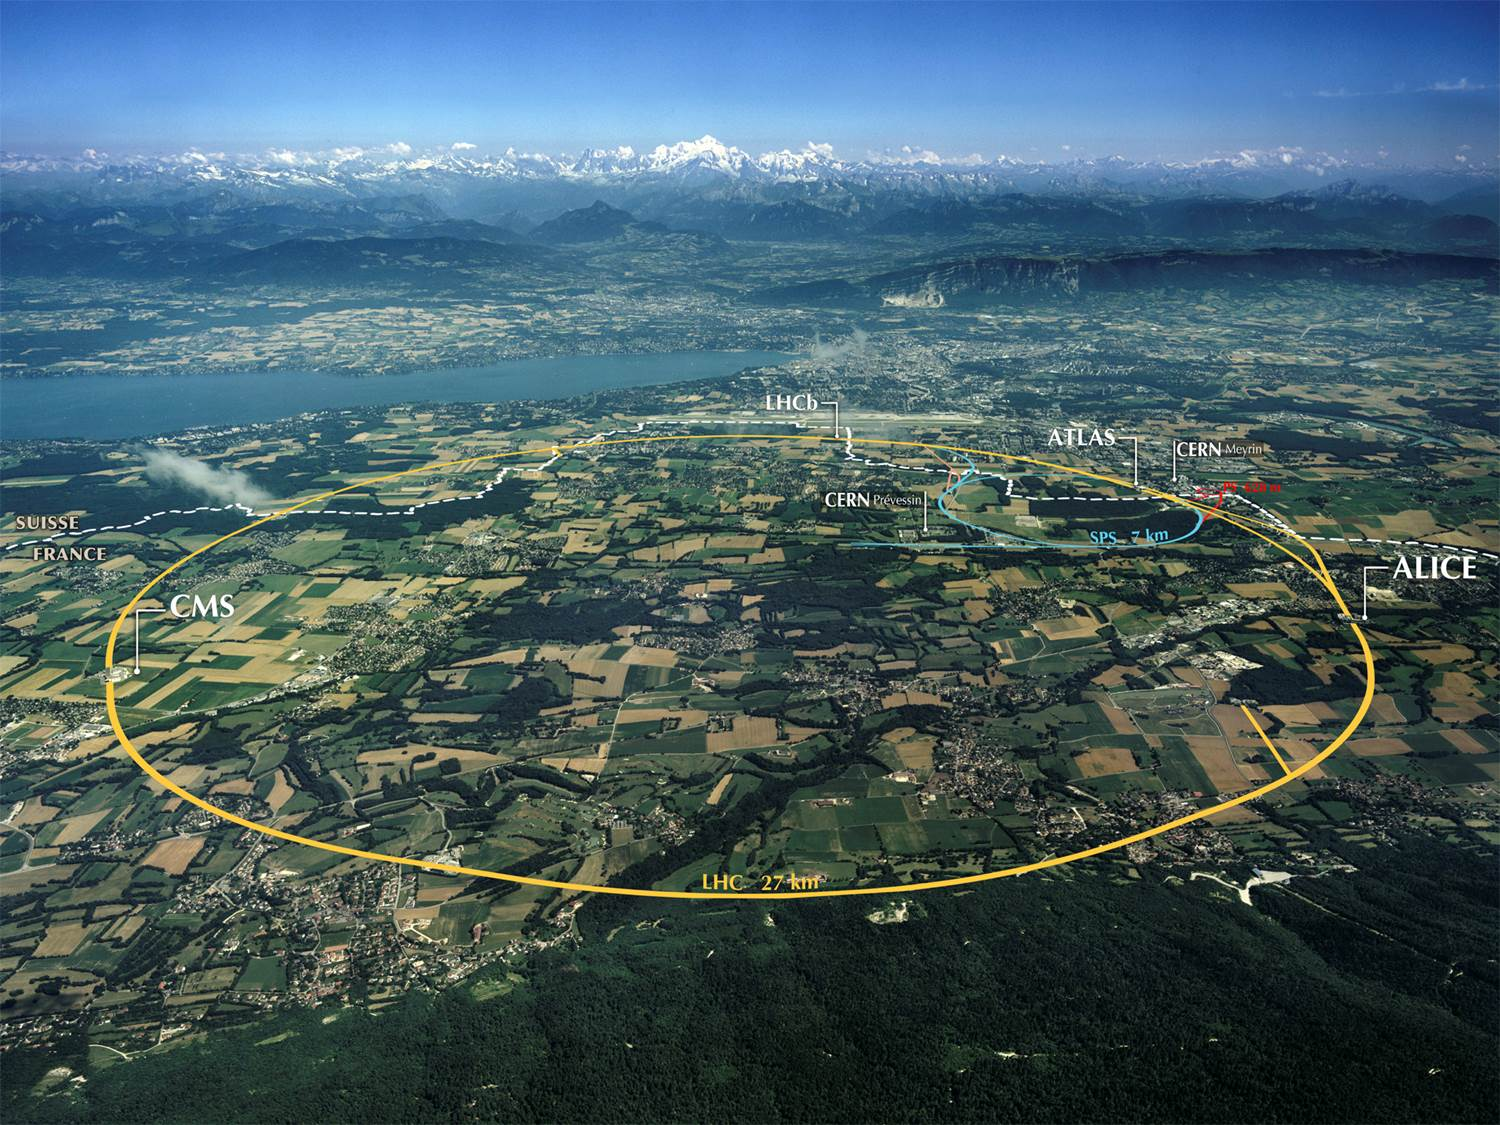 The scale of the LHC. Credit: CERN